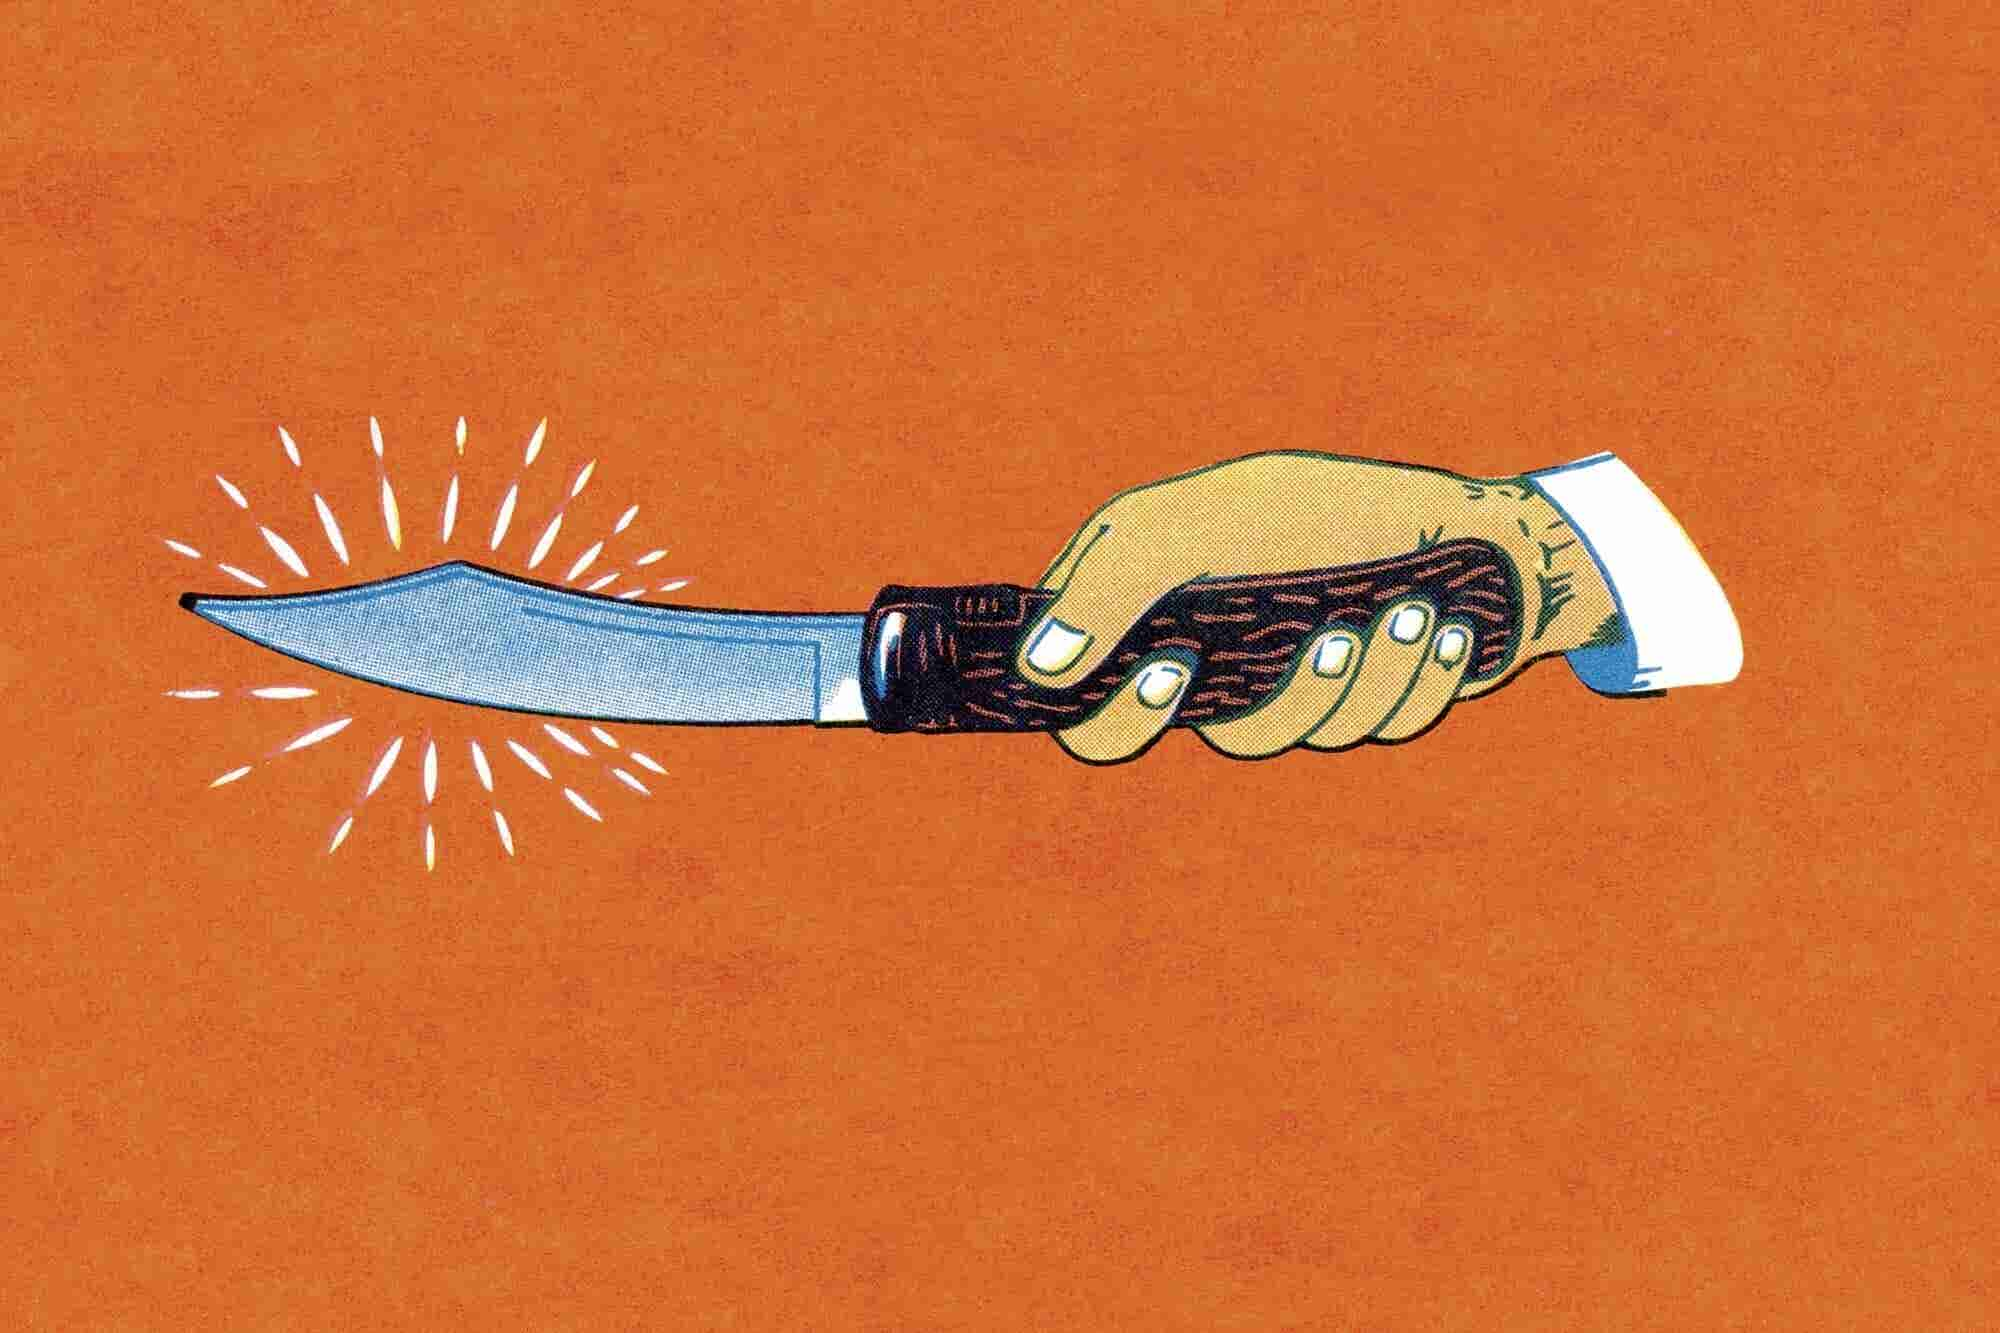 Take Control of Your Business by Treating It Like a Knife Fight